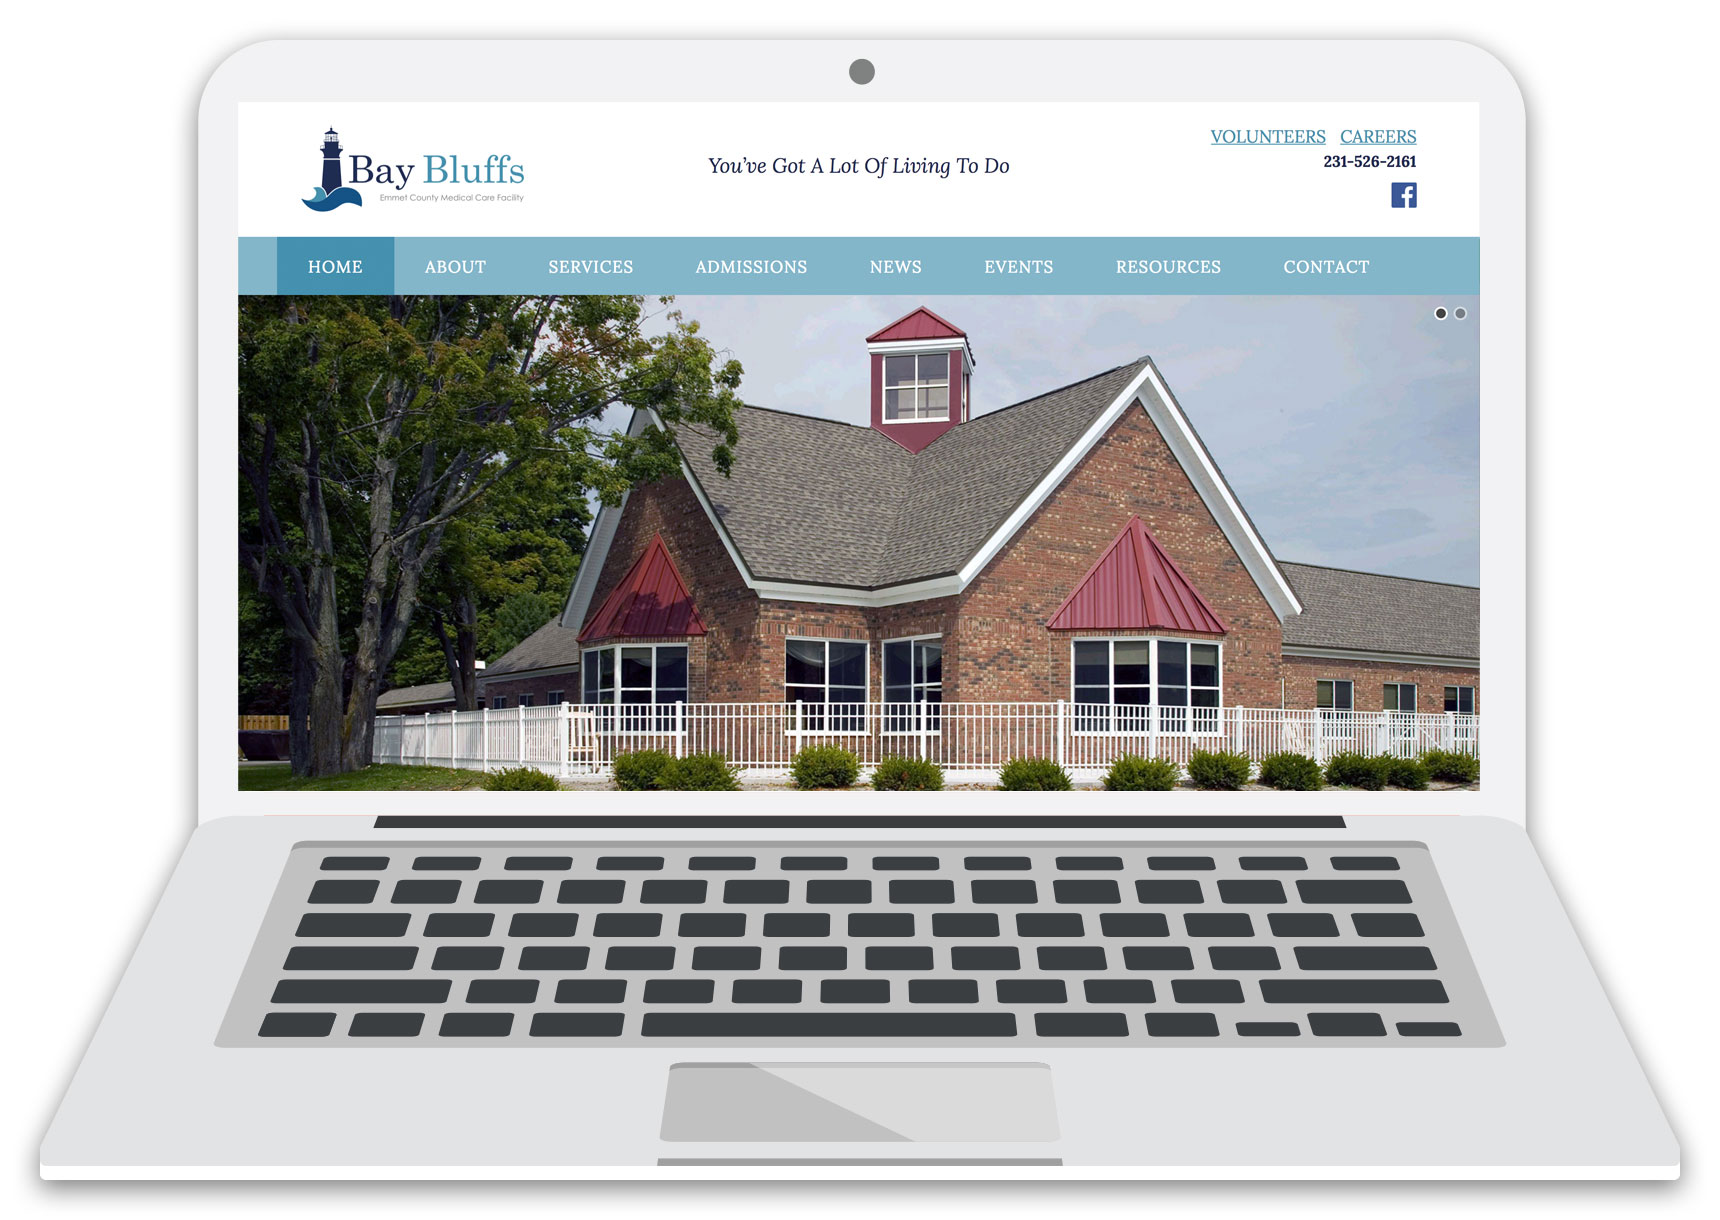 bay bluffs website laptop